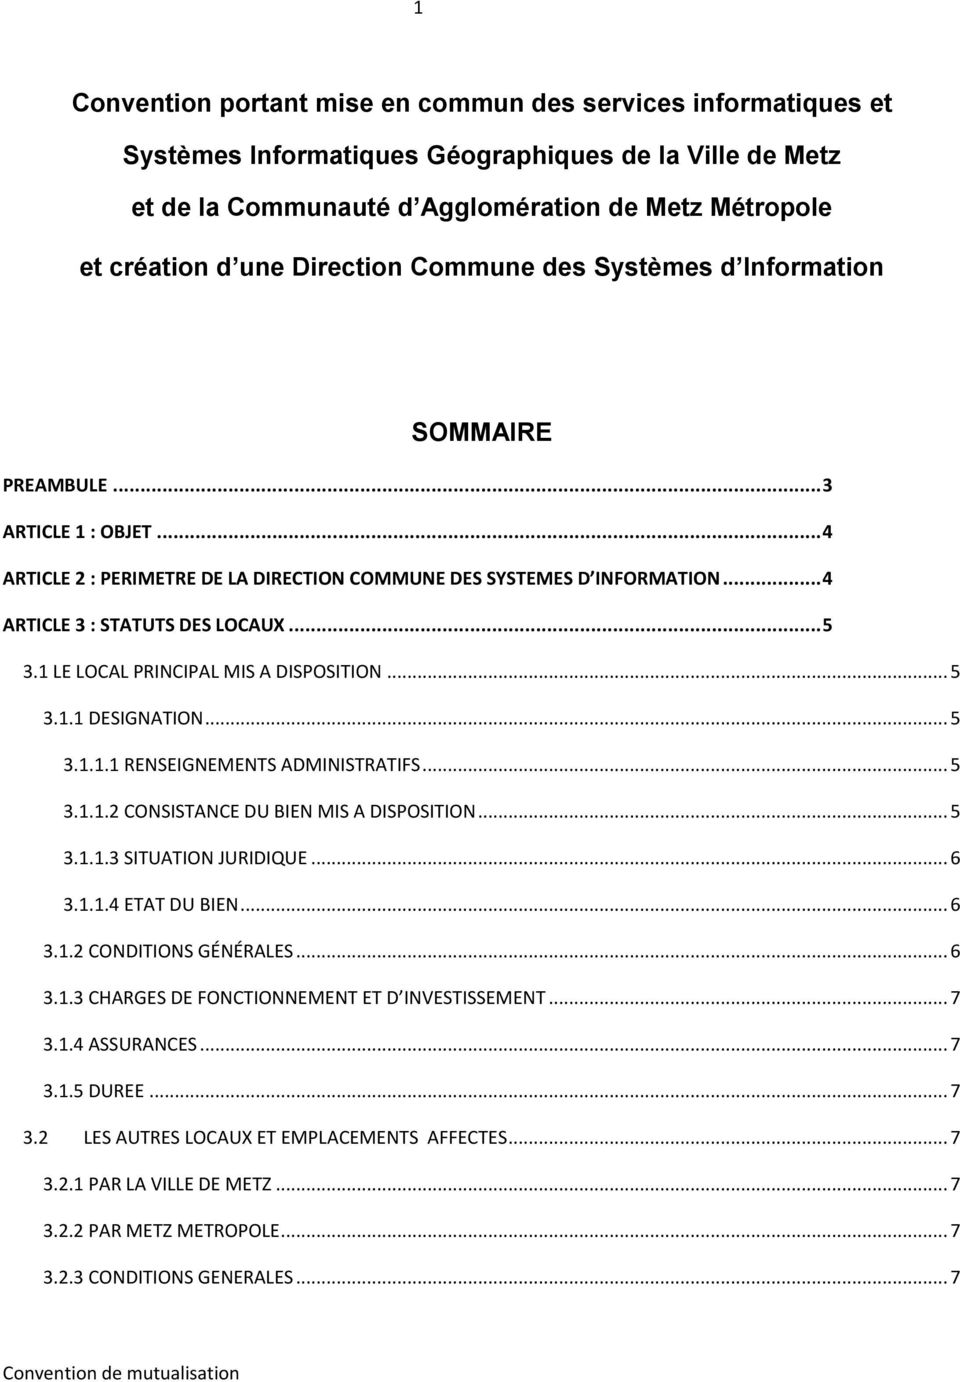 .. 5 3.1 LE LOCAL PRINCIPAL MIS A DISPOSITION... 5 3.1.1 DESIGNATION... 5 3.1.1.1 RENSEIGNEMENTS ADMINISTRATIFS... 5 3.1.1.2 CONSISTANCE DU BIEN MIS A DISPOSITION... 5 3.1.1.3 SITUATION JURIDIQUE.